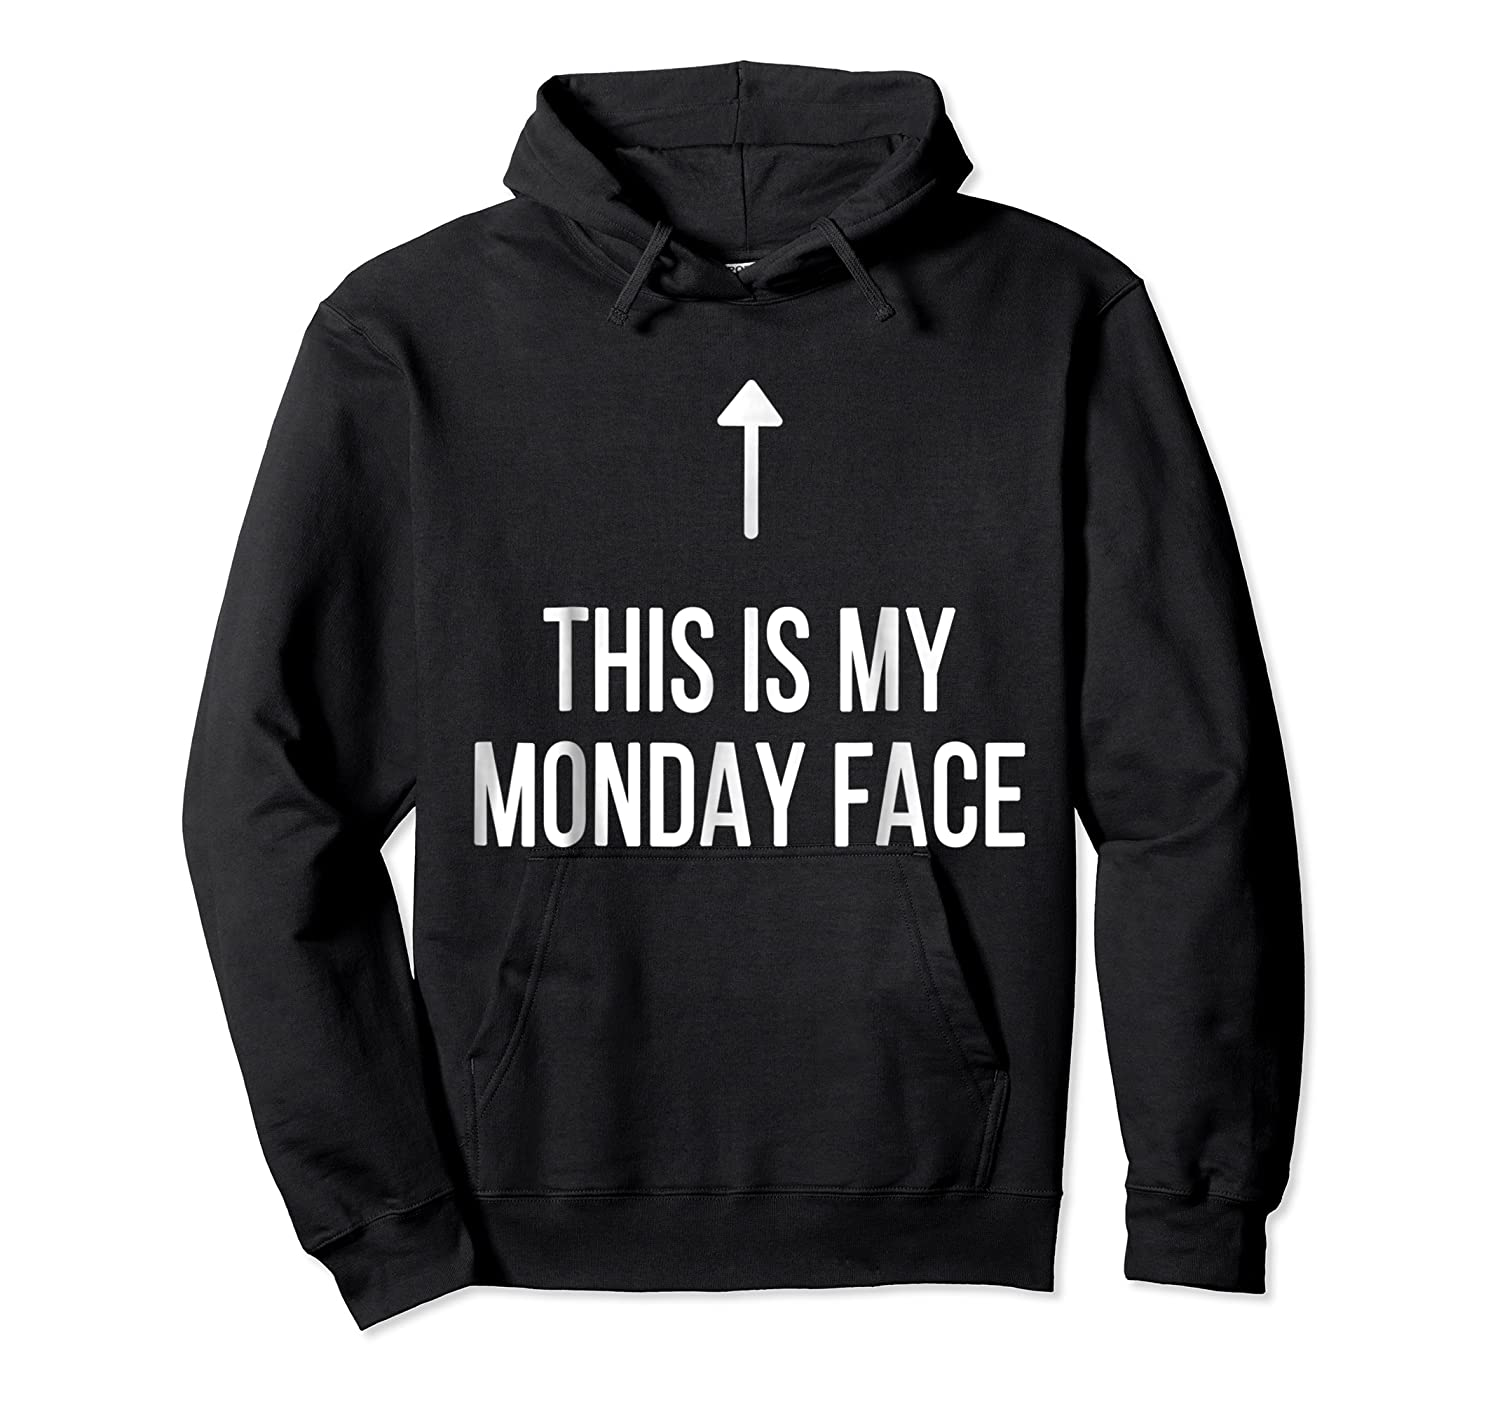 This Is My Monday Face - Funny Monday Shirt Unisex Pullover Hoodie